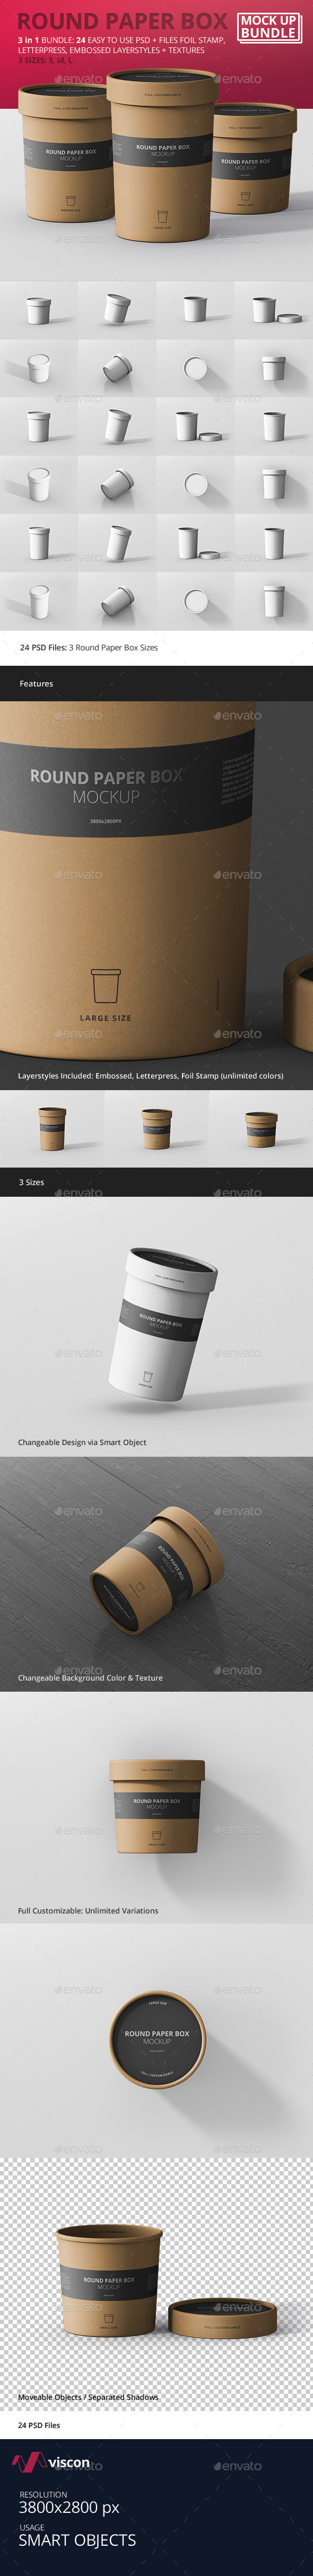 Round Paper Box Mockup Bundle